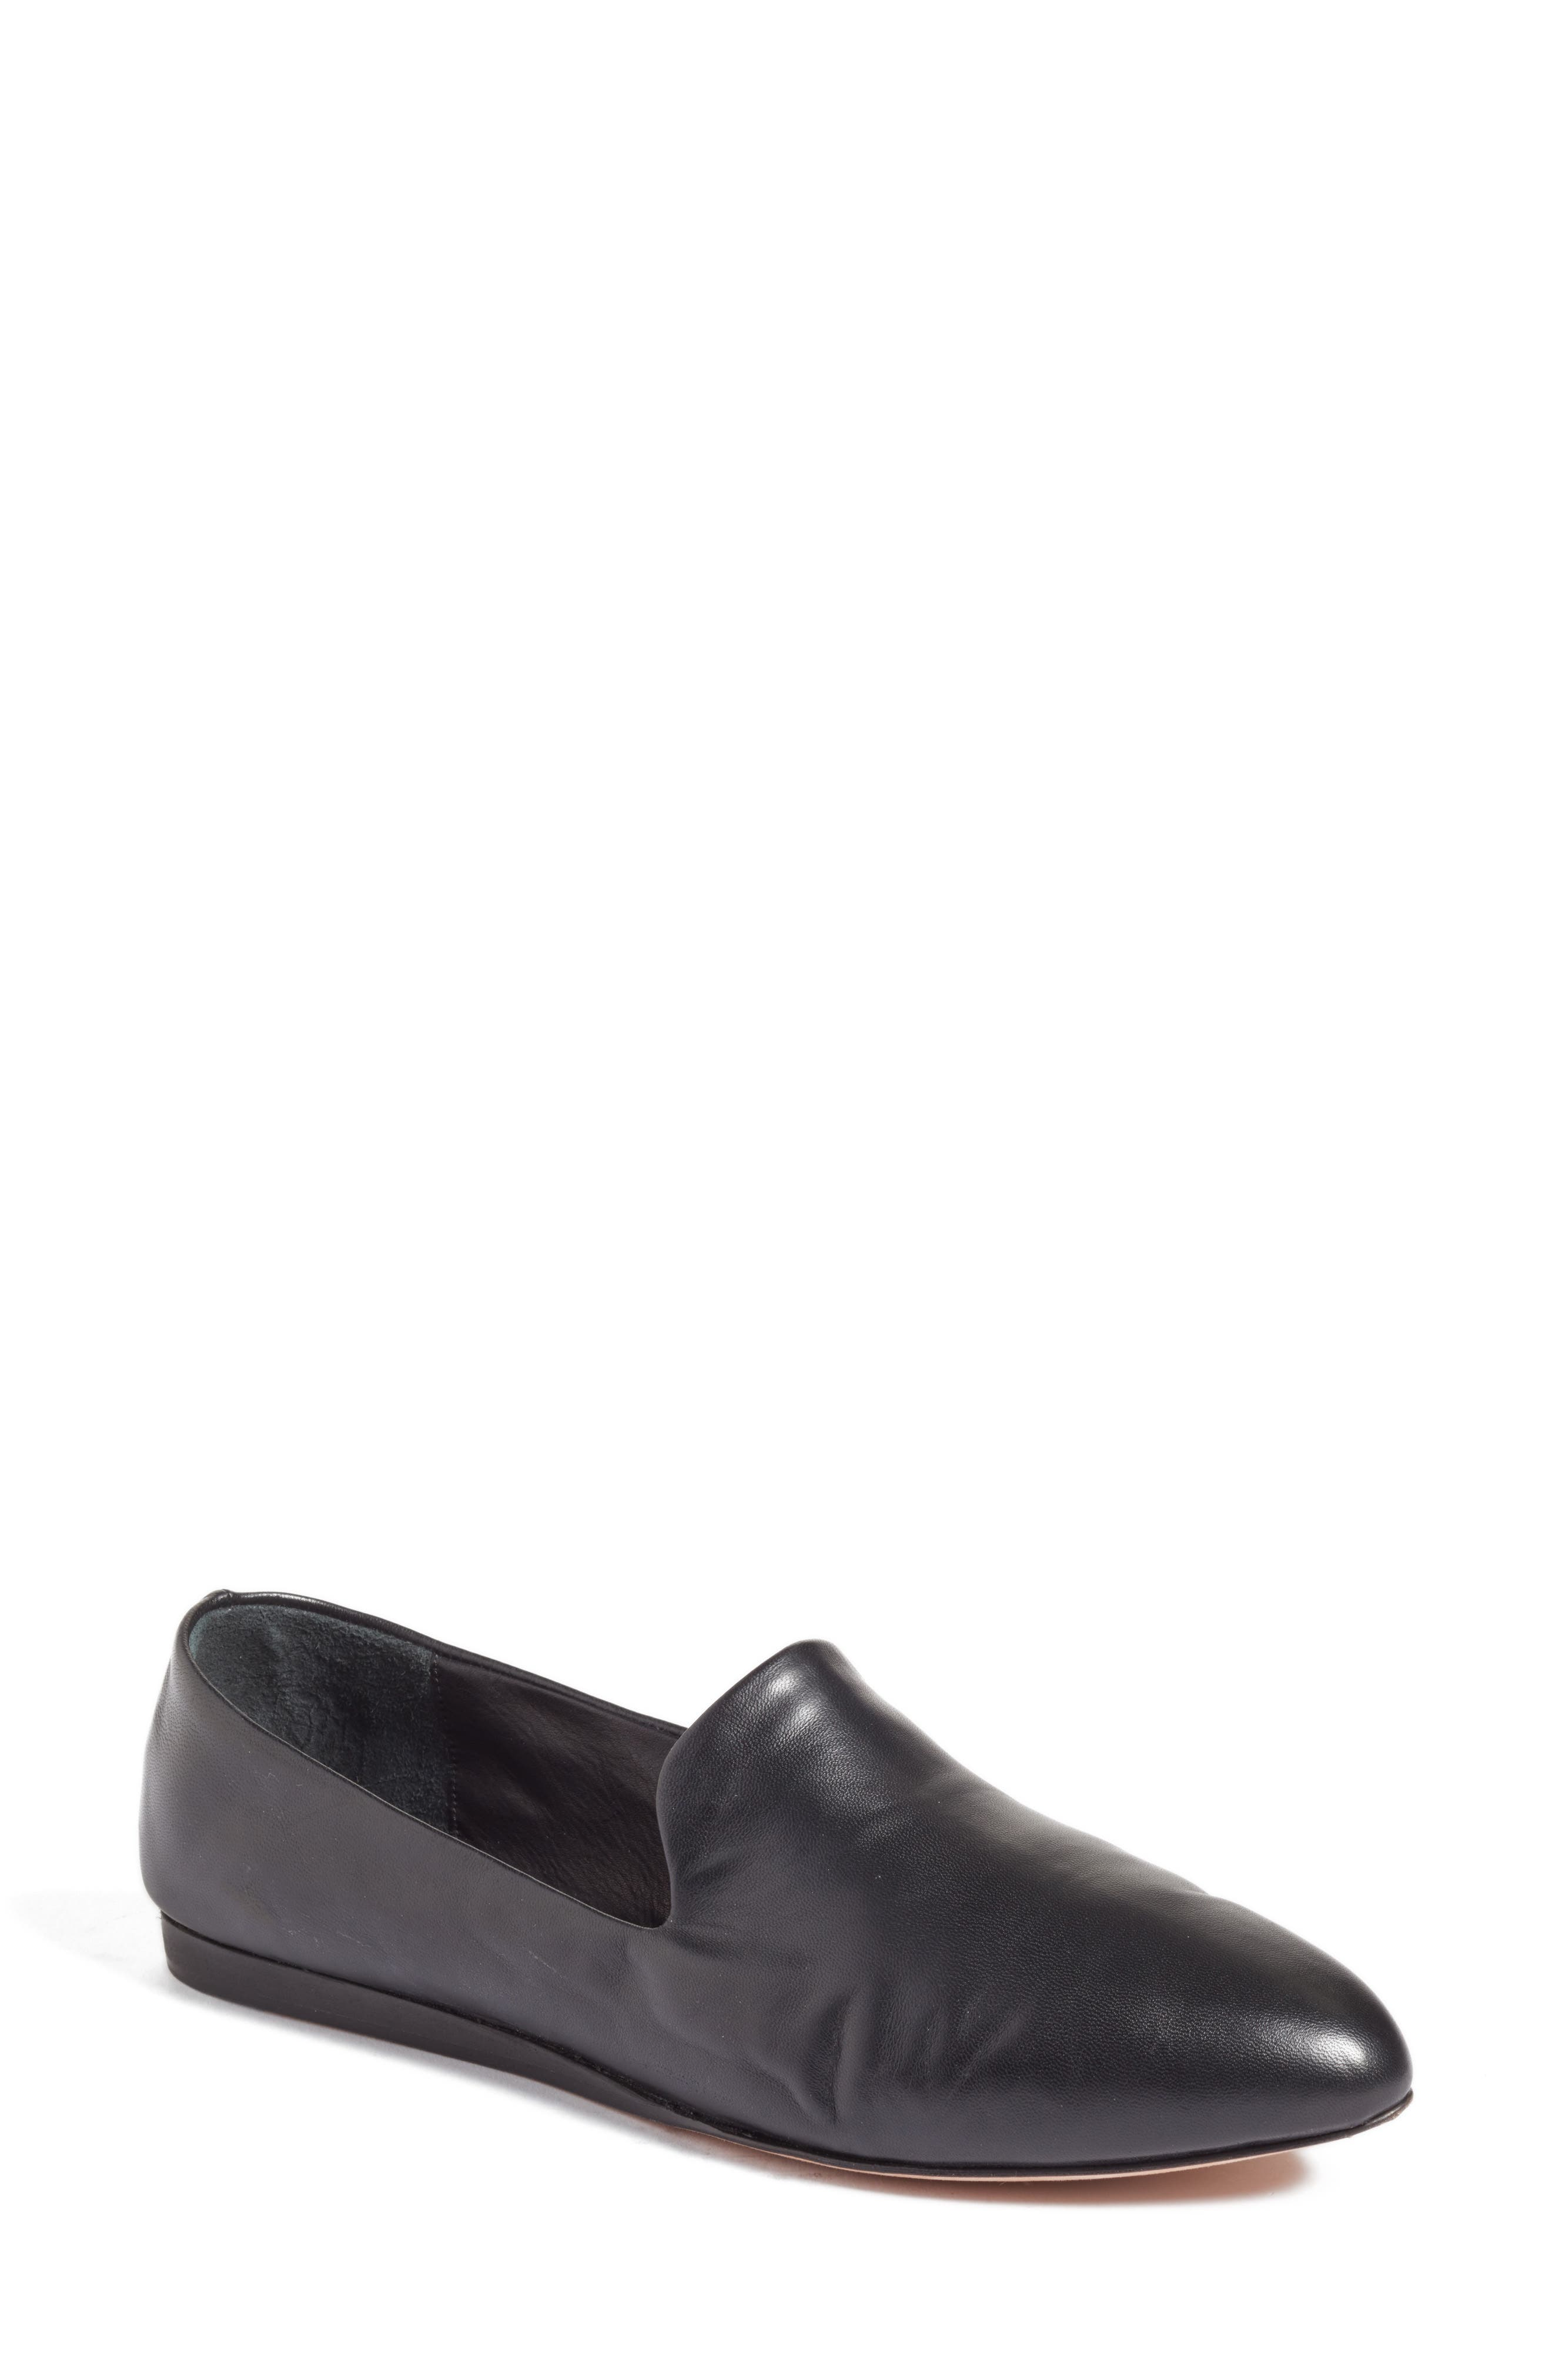 Griffin Pointy Toe Loafer,                         Main,                         color, 001